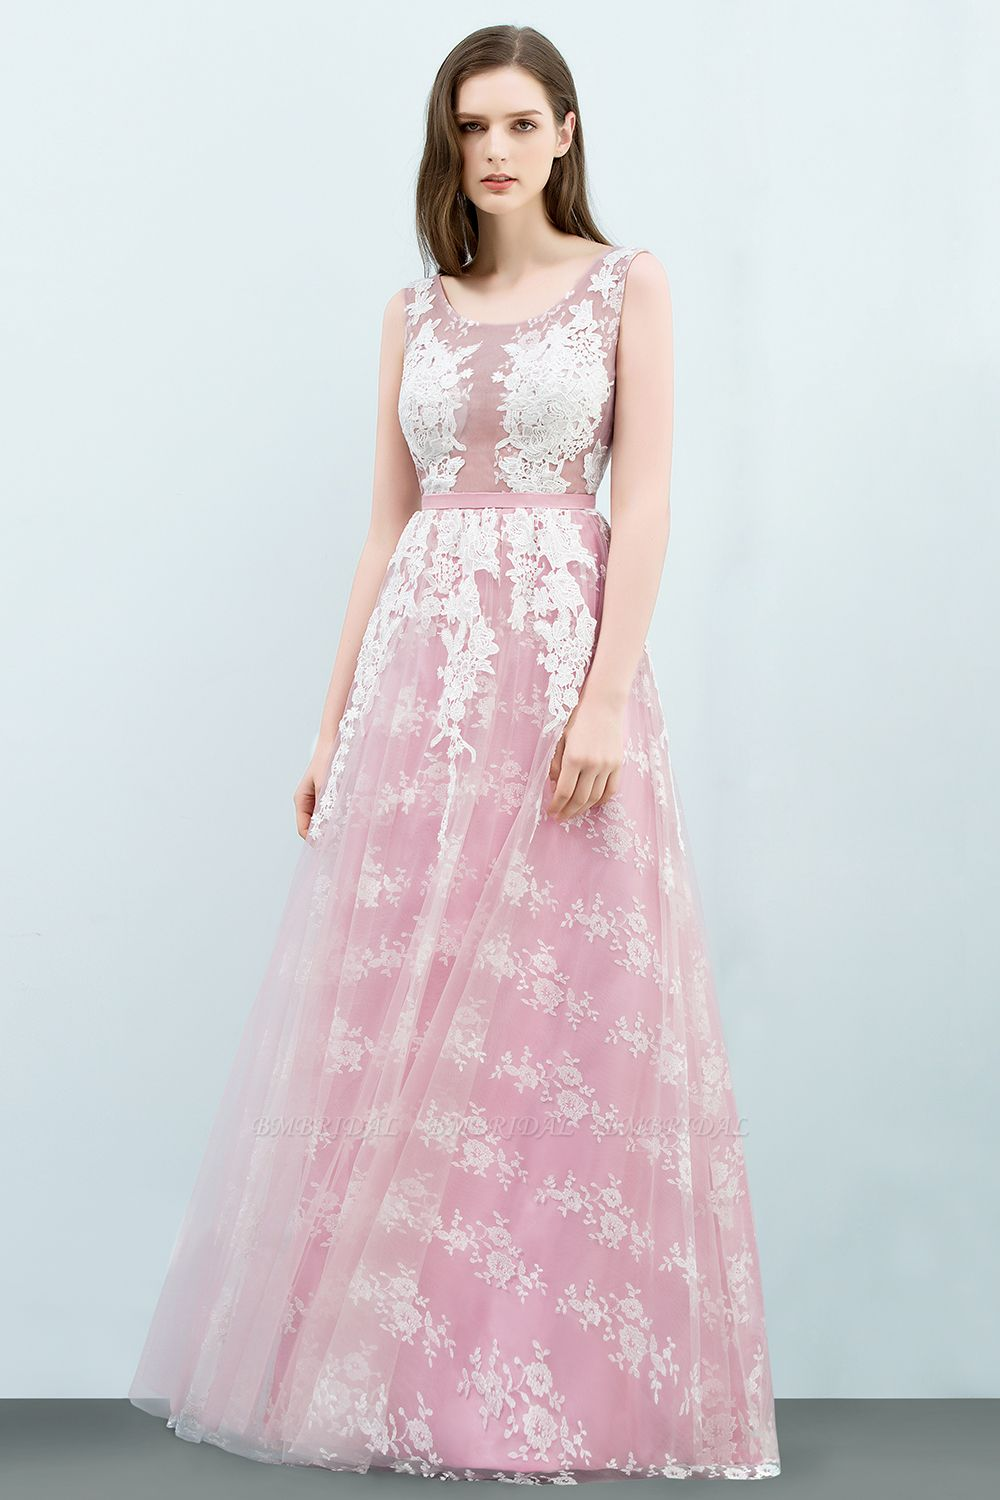 Elegant Pink Sleeveless Prom Dress Tulle Long Evening Gowns With Lace Appliques